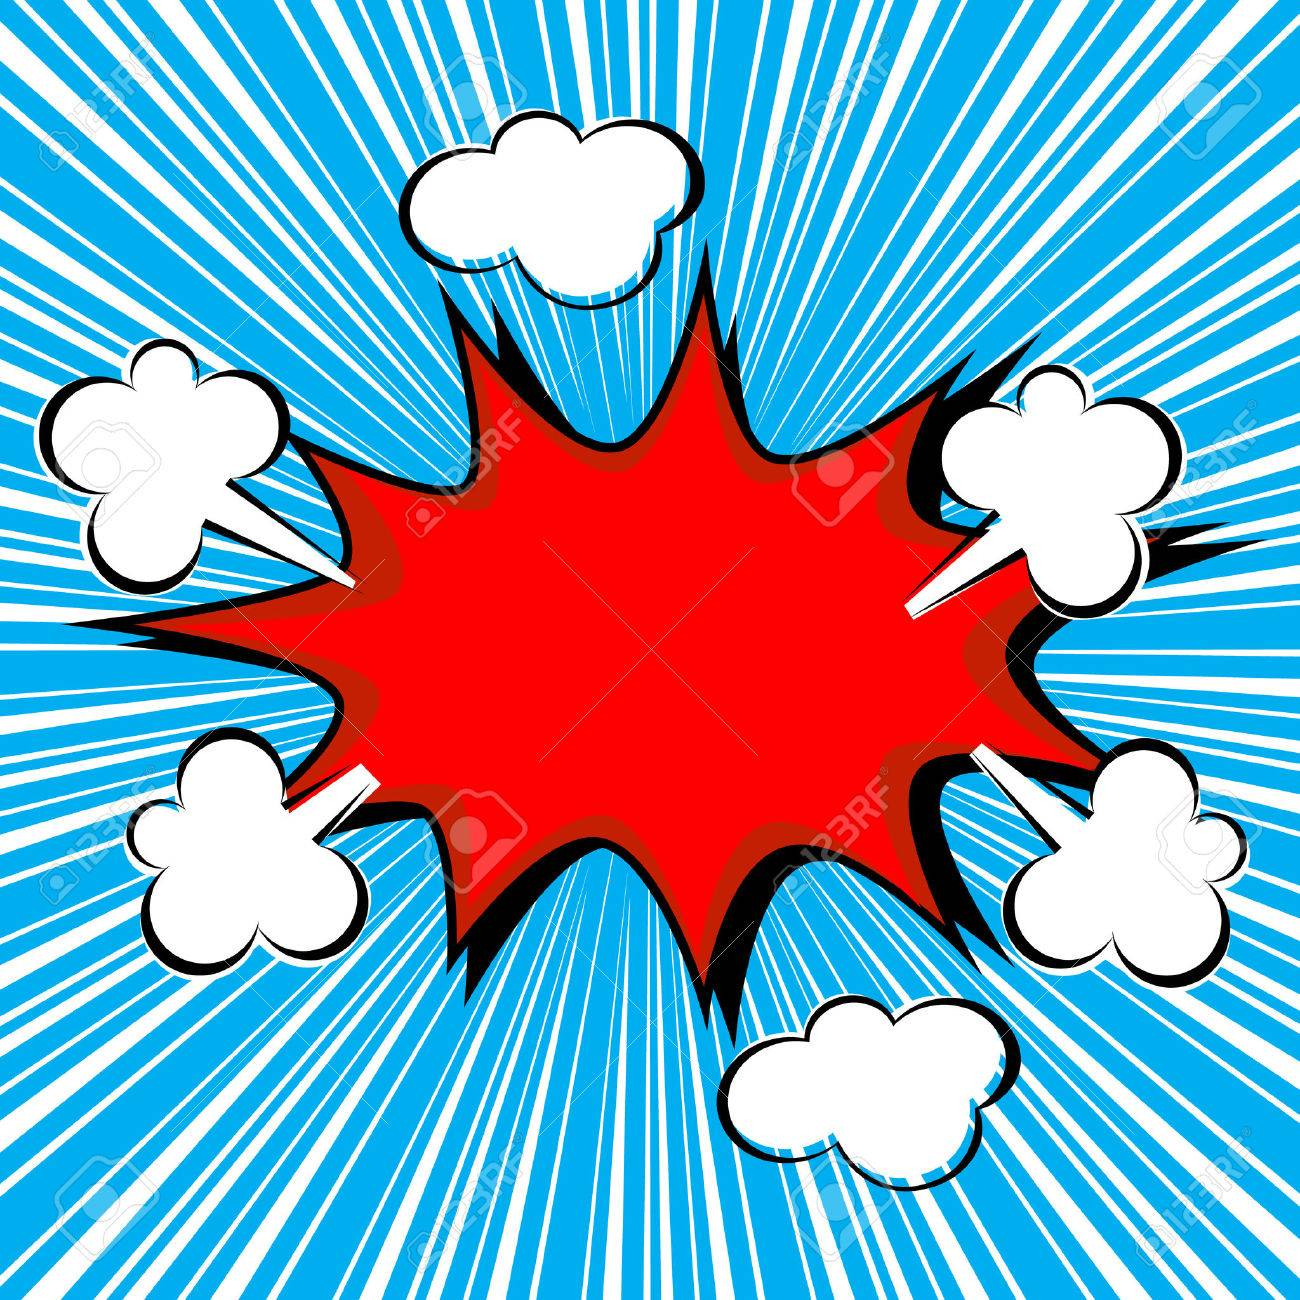 boom comic speech bubble with radial speed vector illustration